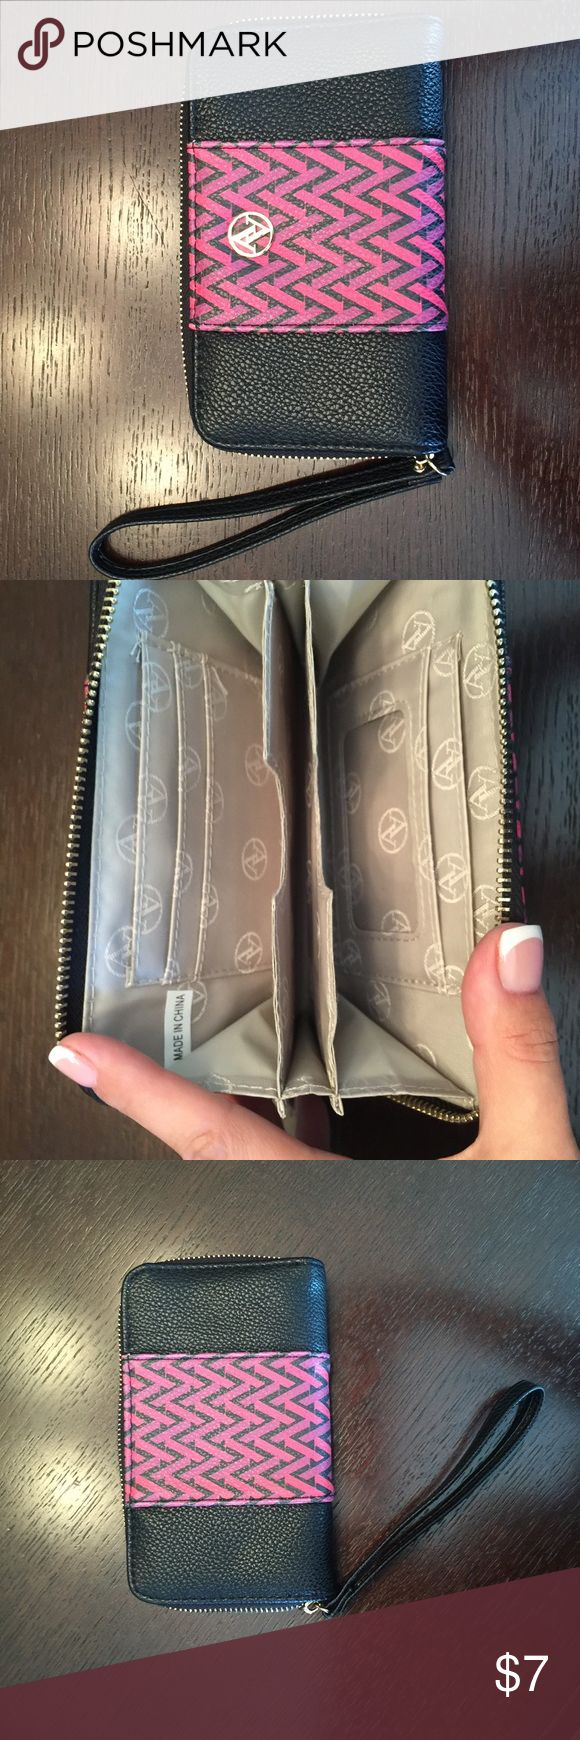 Adrienne Vittadini Wallet Excellent condition! Adrienne Vittadini Bags Wallets